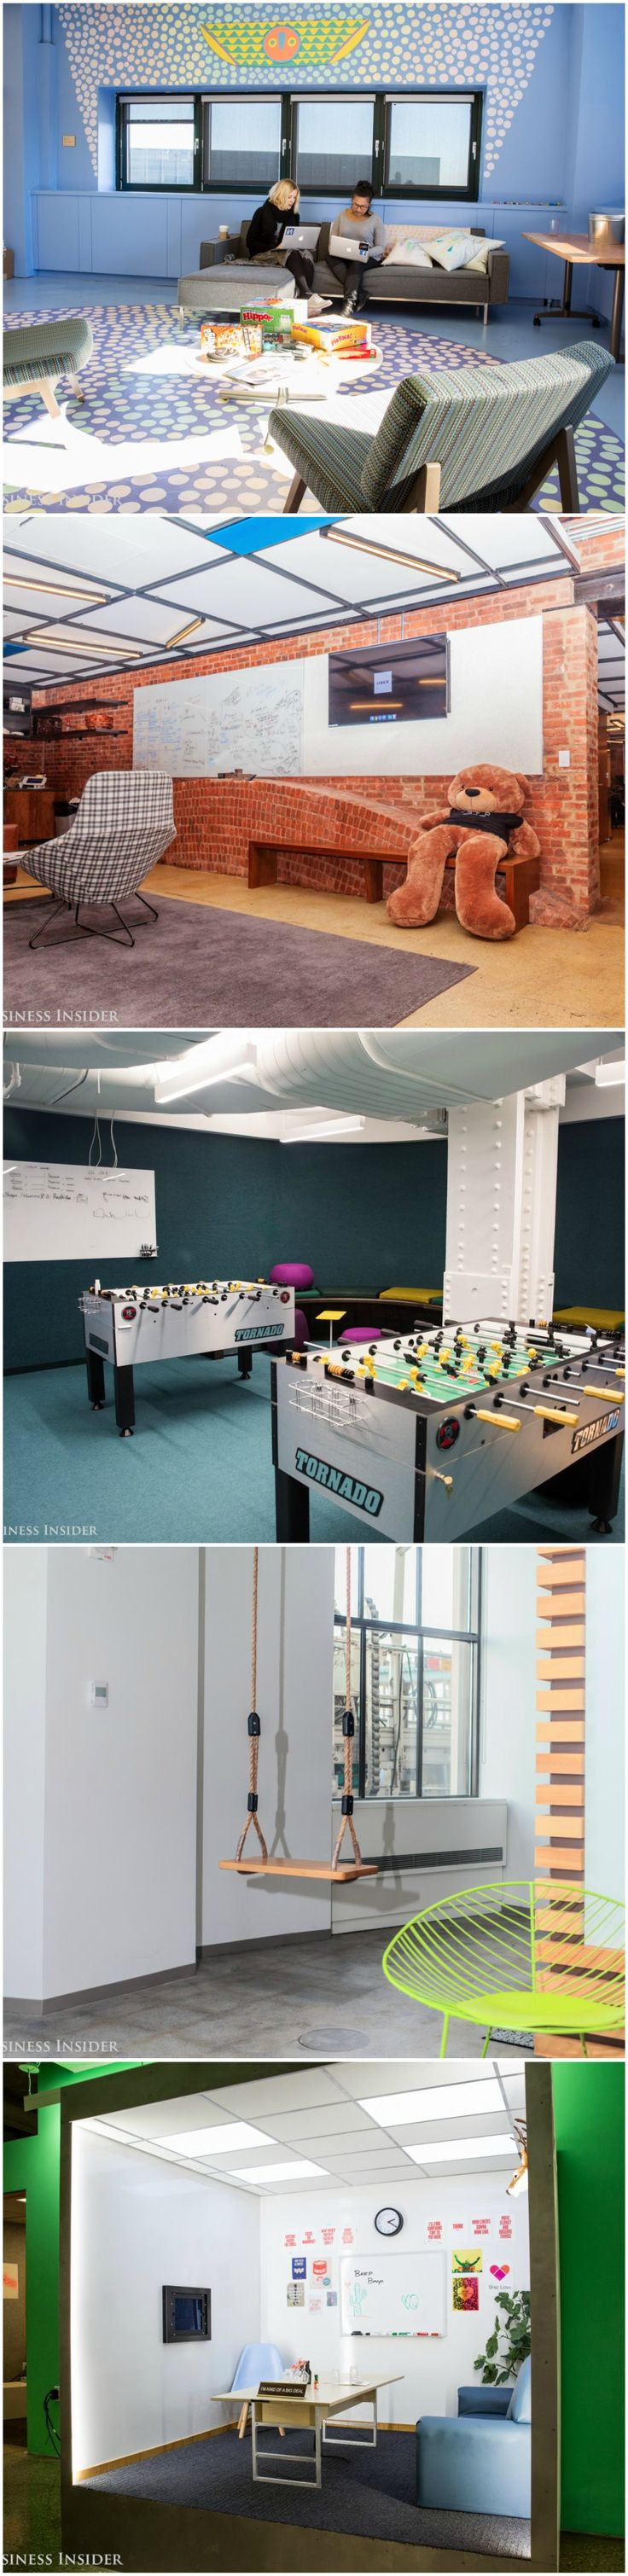 Take a look at the cool spaces where employees at panies like LinkedIn and Uber hang out when they re not at their desks